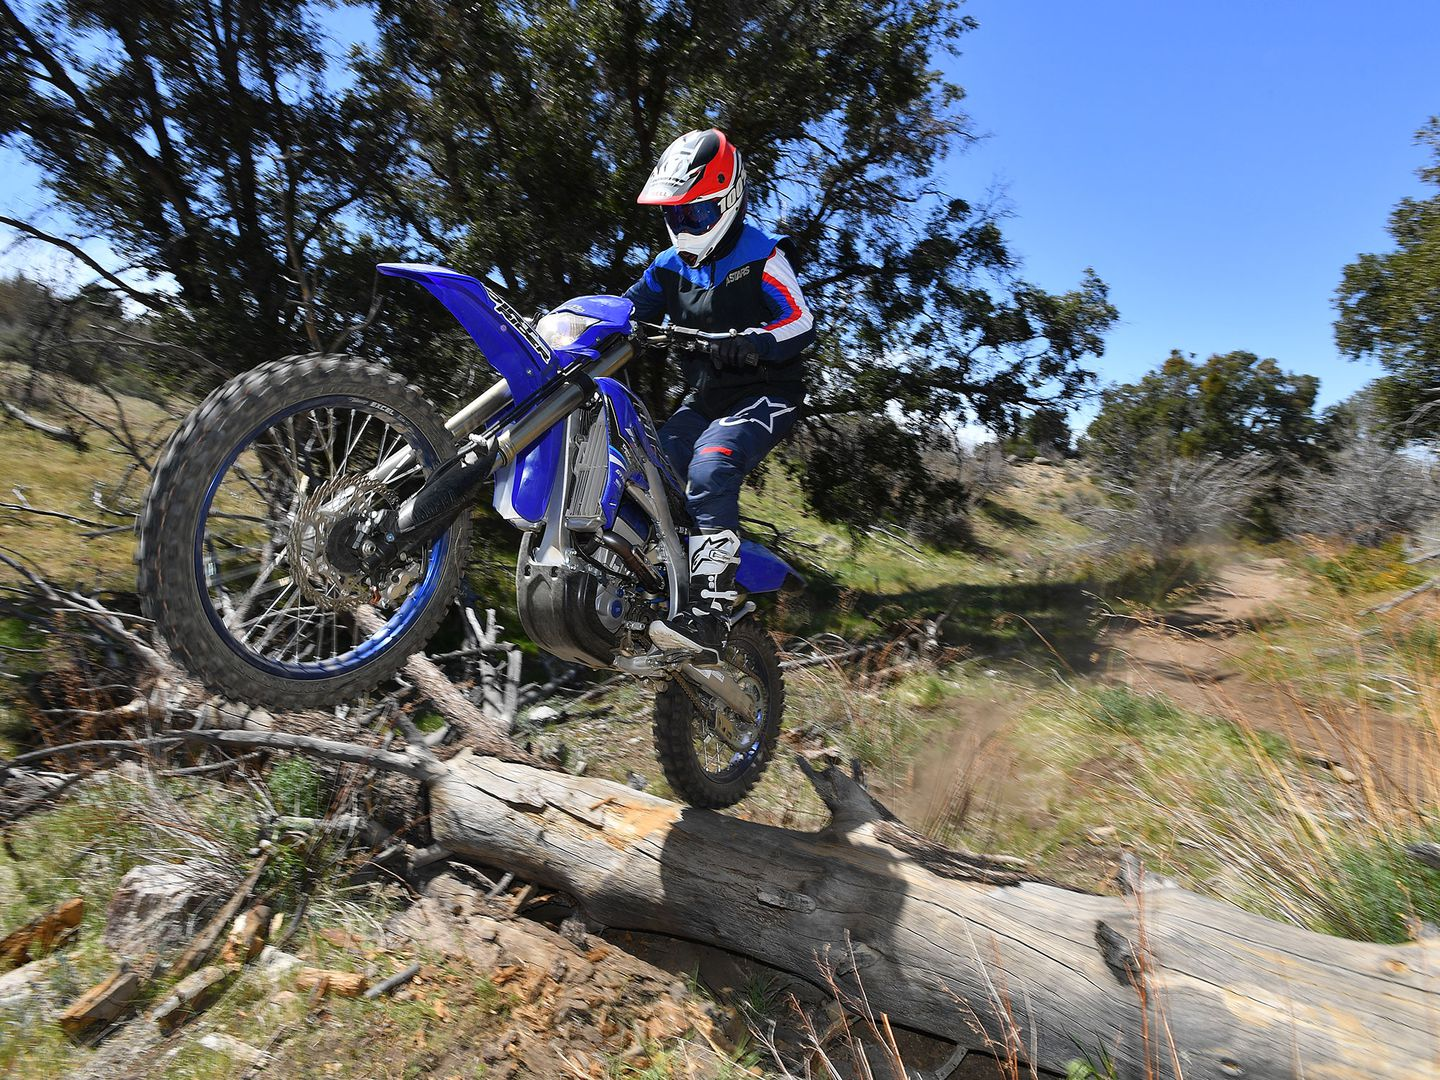 2021 Yamaha Wr450f Review